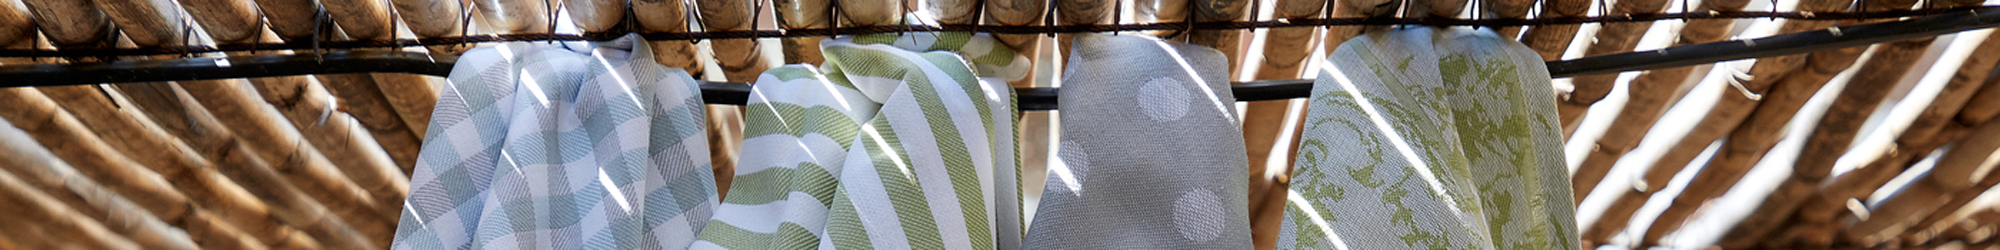 Casafina Kitchen Towels & Table Linens